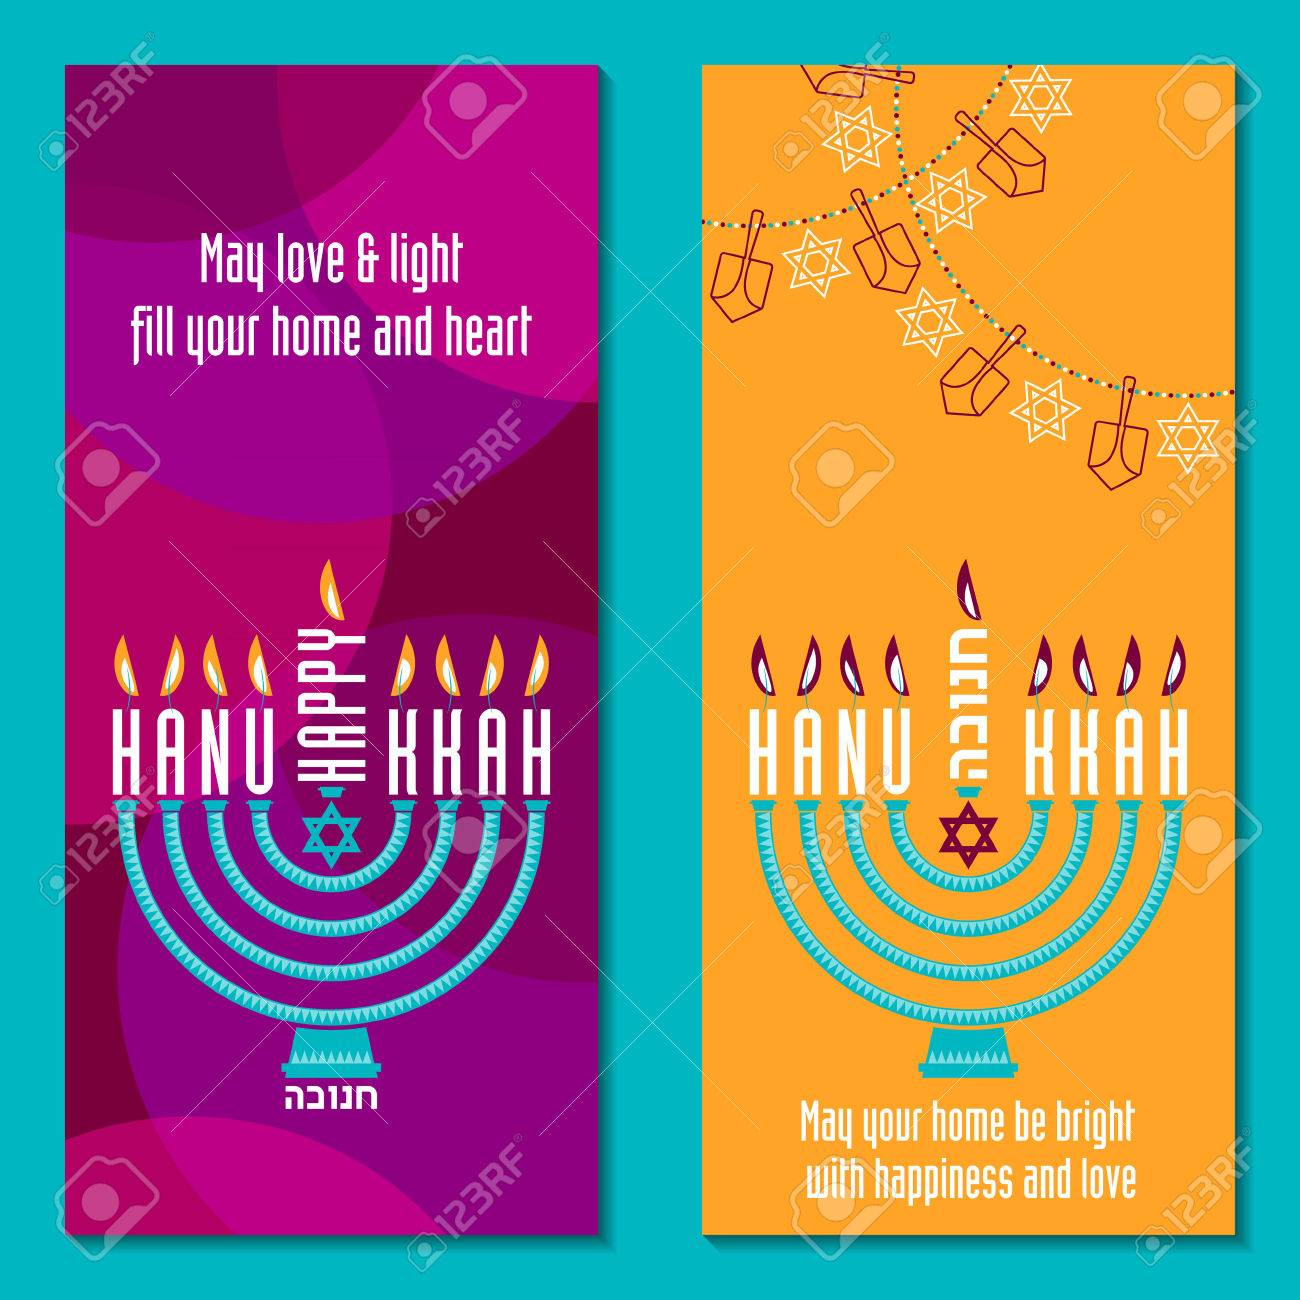 2 greeting cards happy hanukkah jewish holiday vector illustration 2 greeting cards happy hanukkah jewish holiday vector illustration stock vector 47995153 m4hsunfo Image collections